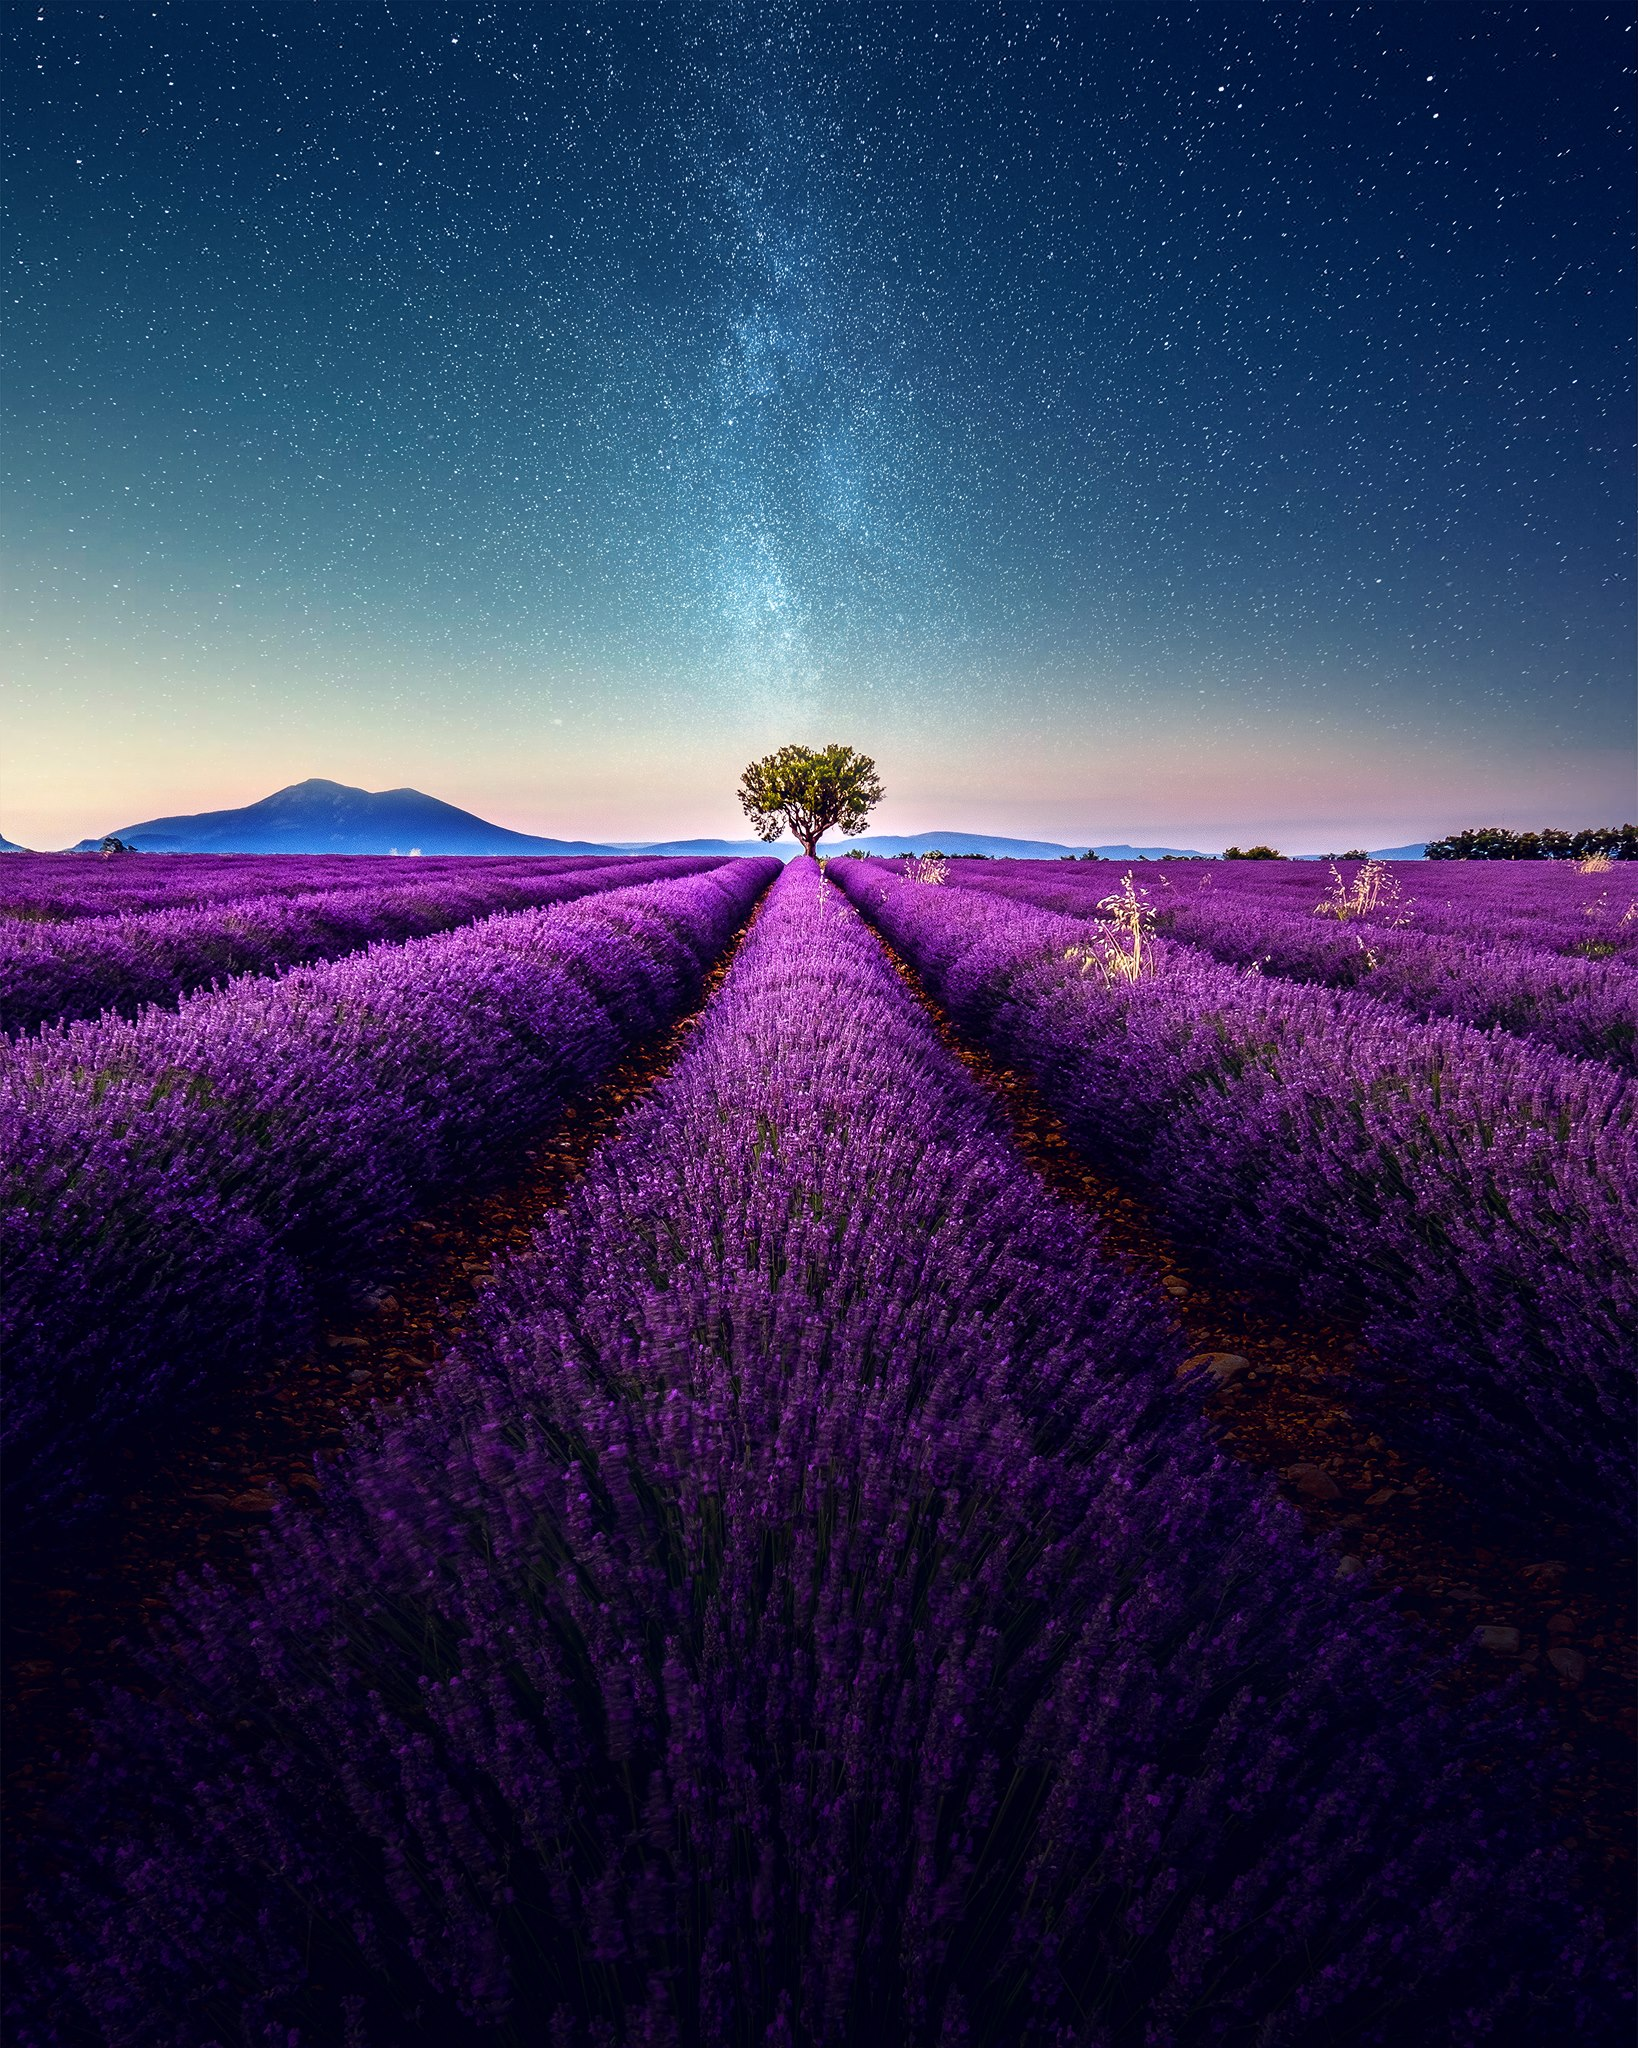 Lavender Fields France Map.Lavender Field Under The Milky Way Today S Image Earthsky